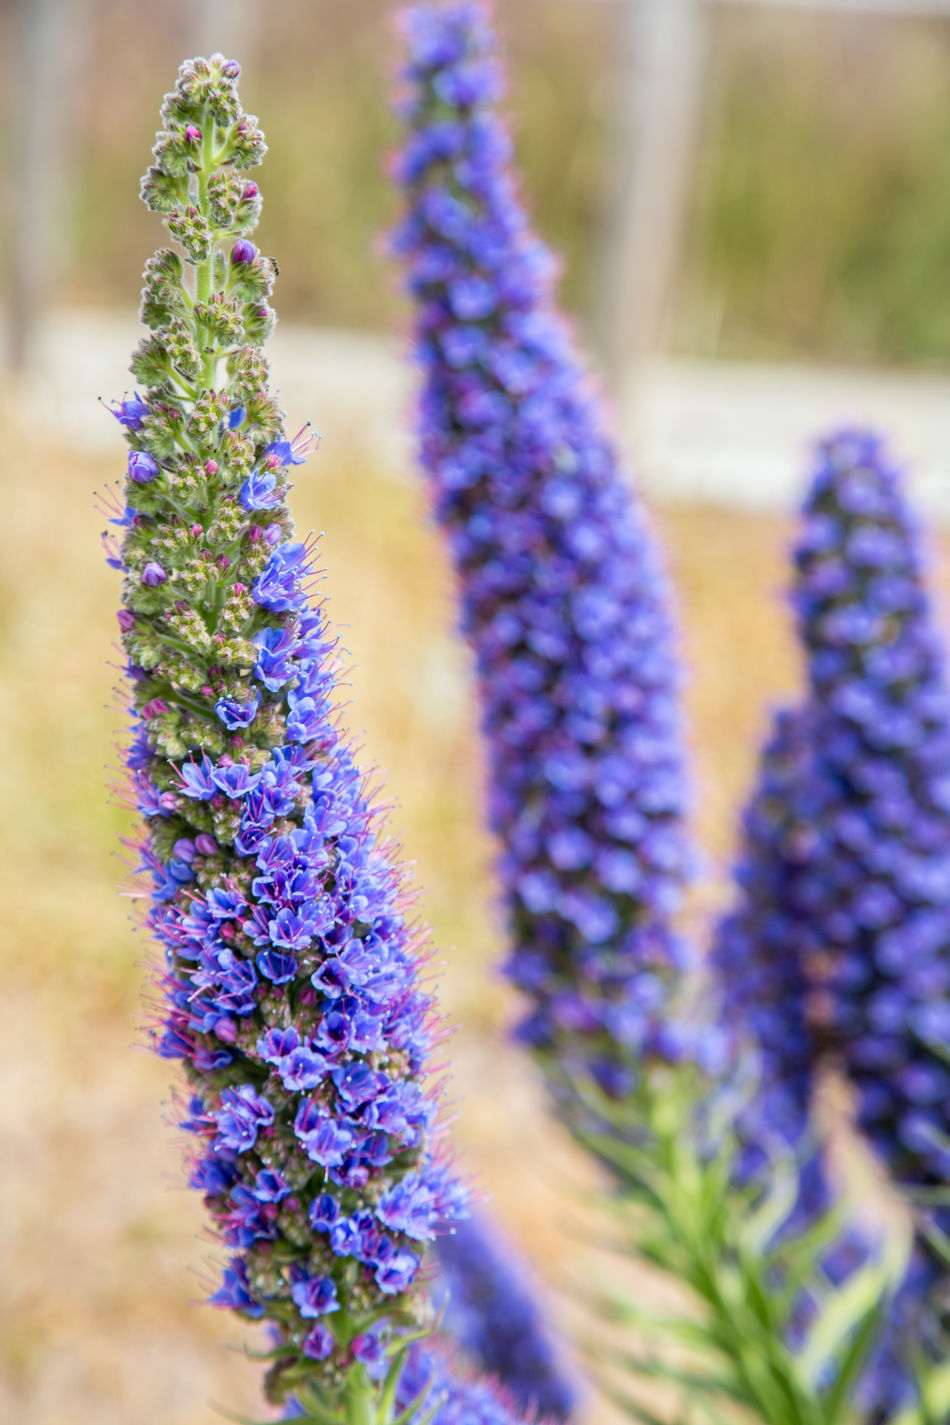 Beauty In Nature Blue Close-up Echium Candicans Flowers Fragility Freshness Of Flower Growth Process Lavender Madeira Island Massaroco Massaroco Endemic Plant Nature No People Outdoors Plant Purple Purple Flower